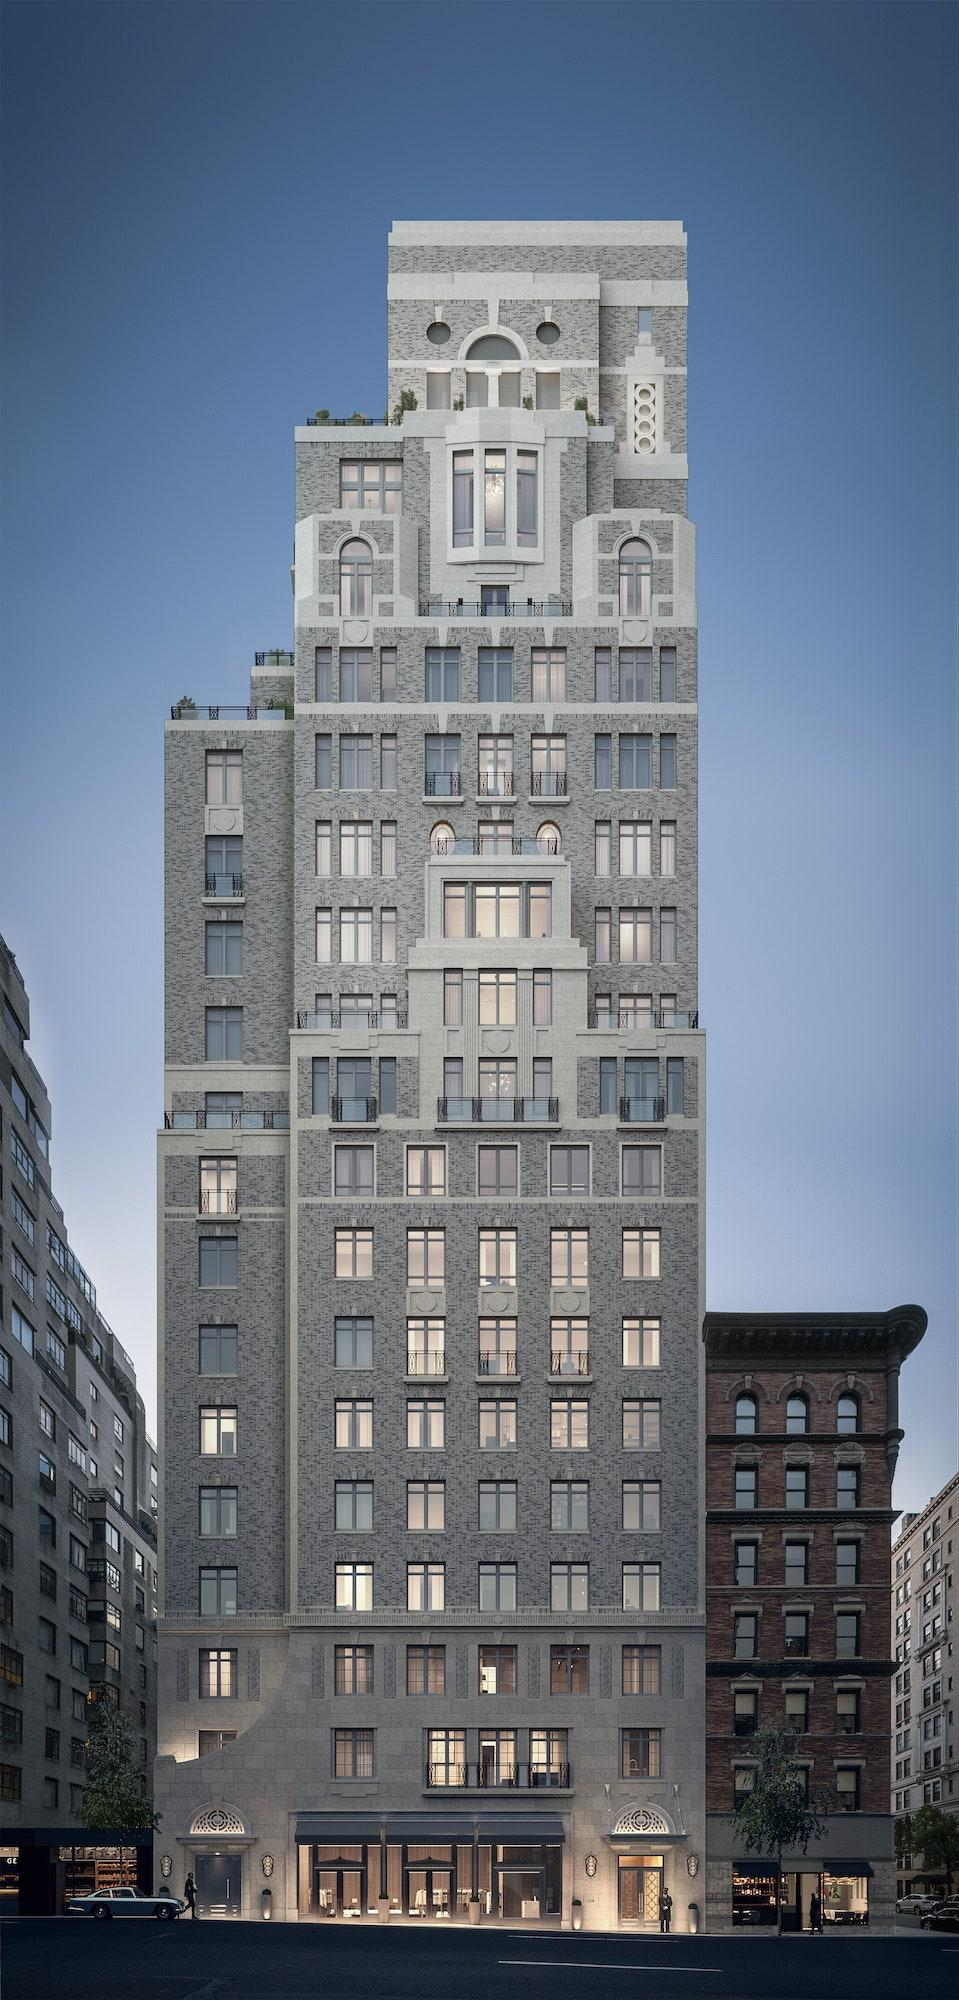 A street view of 1228 Madison, which is located in New York's Upper East Side, one block east of the Frank Lloyd Wright-designed Guggenheim Museum.